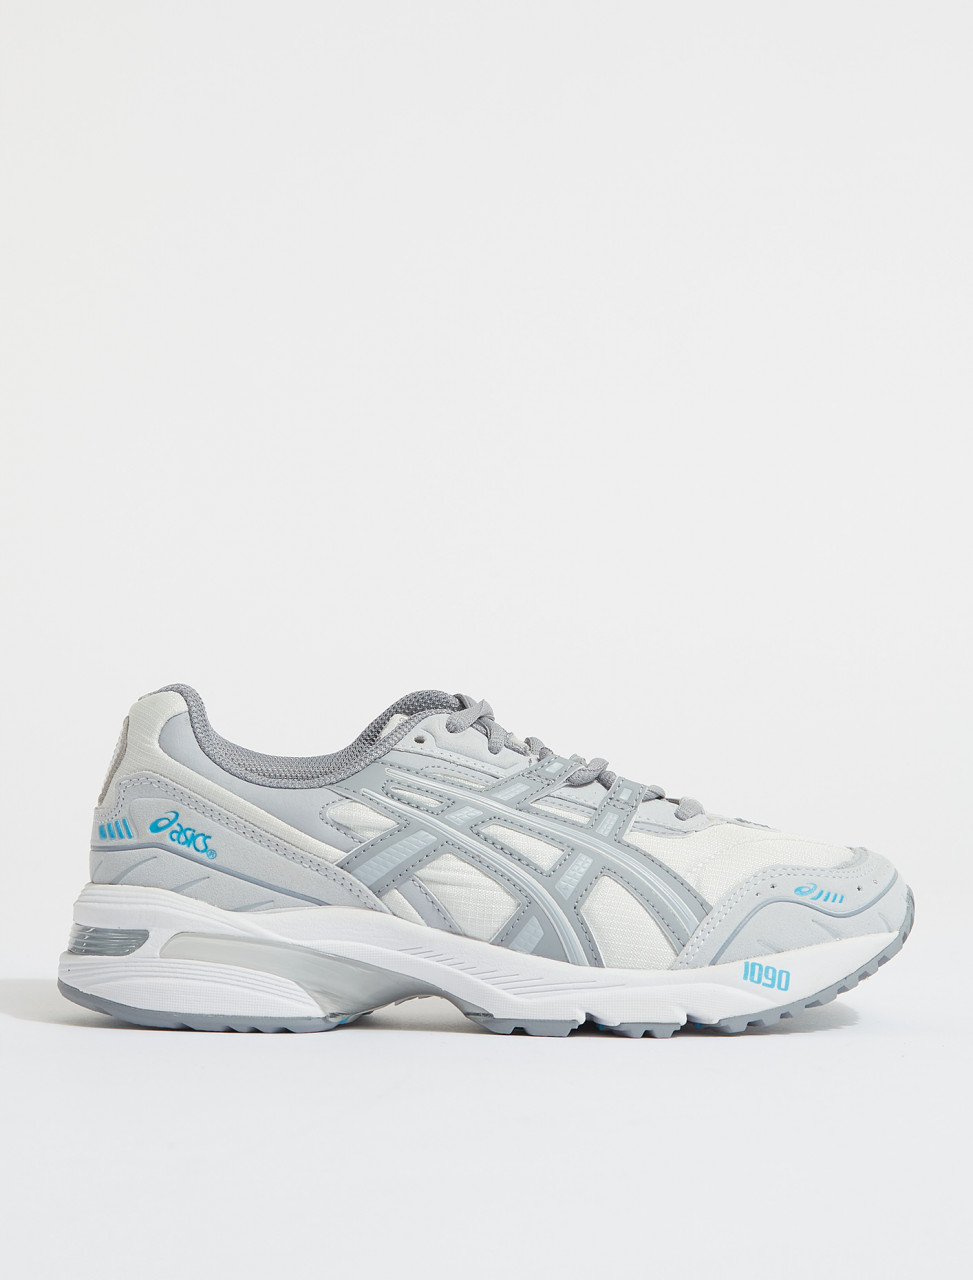 1201A082-020 ASICS GEL 1090 CLACIER GREY SHEET ROCK1201A082-020 ASICS GEL 1090 CLACIER GREY SHEET ROCK